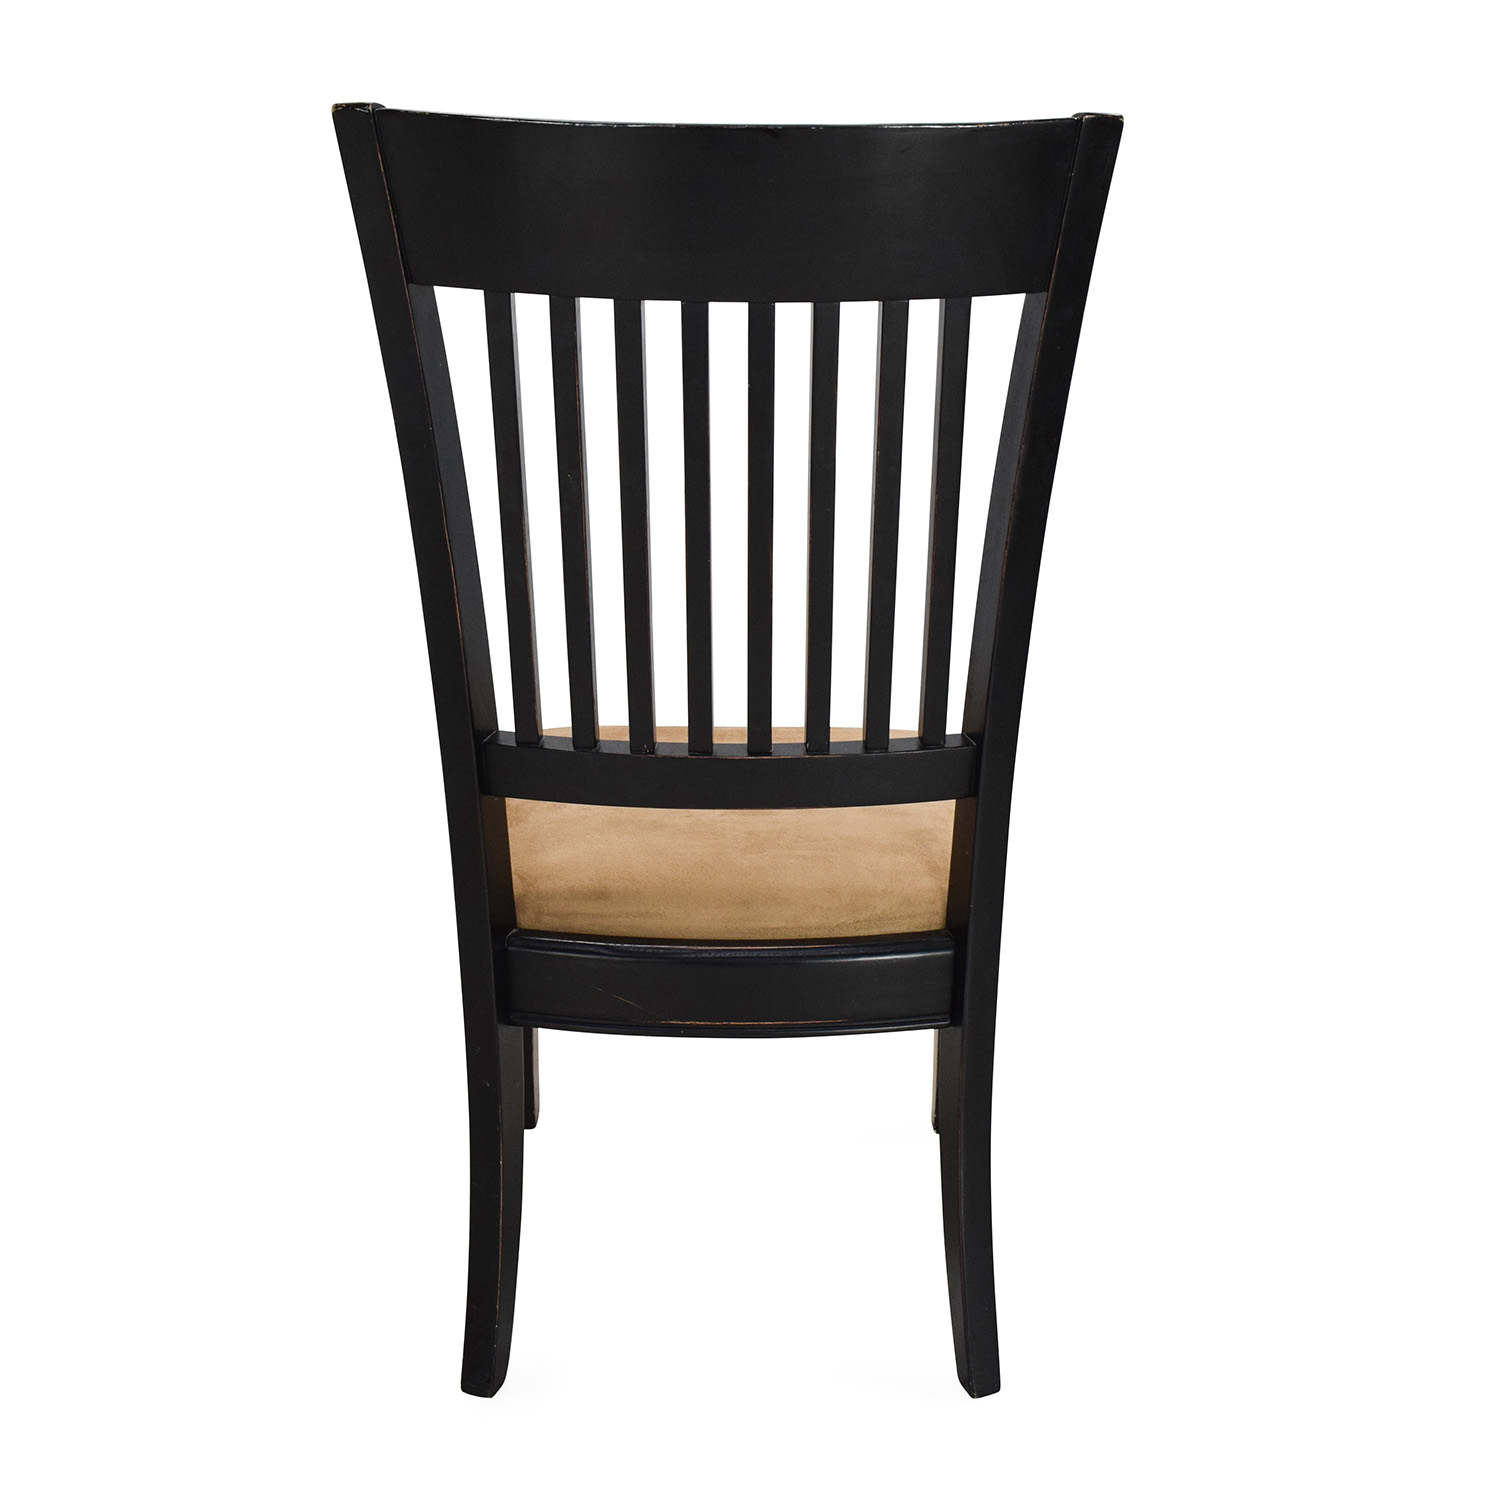 90 off huffman koos 6 modern dining chairs chairs for Furniture 90 off